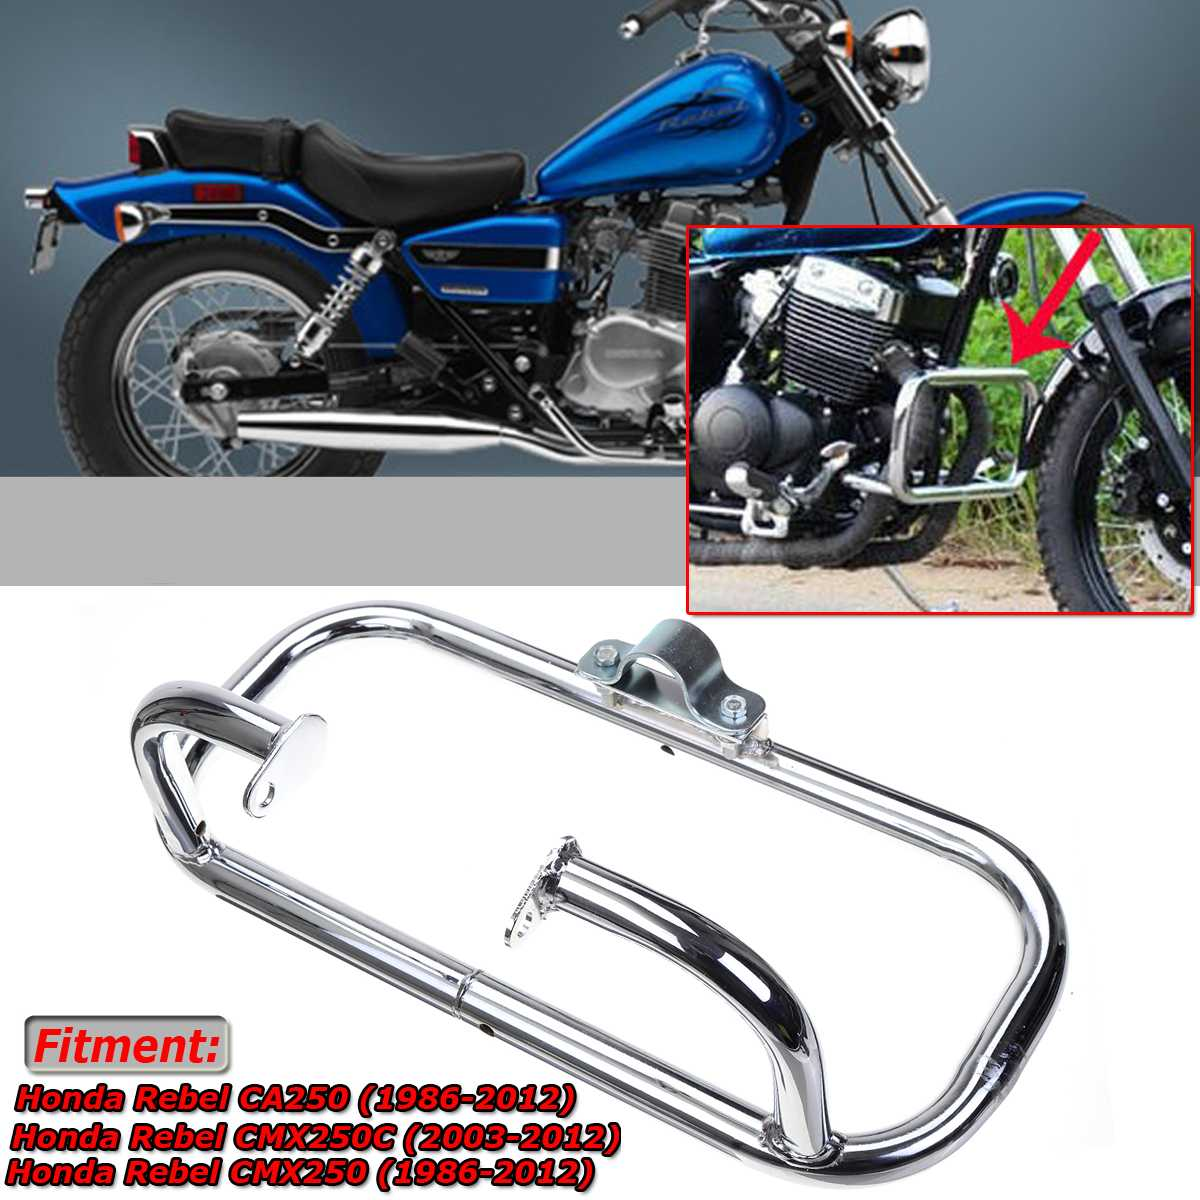 new engine guard crash bar motorcycle front engine guard crash bar for honda rebel 250 ca250 cmx250 cmx250c metal safety bumper in bumpers chassis from  [ 1200 x 1200 Pixel ]